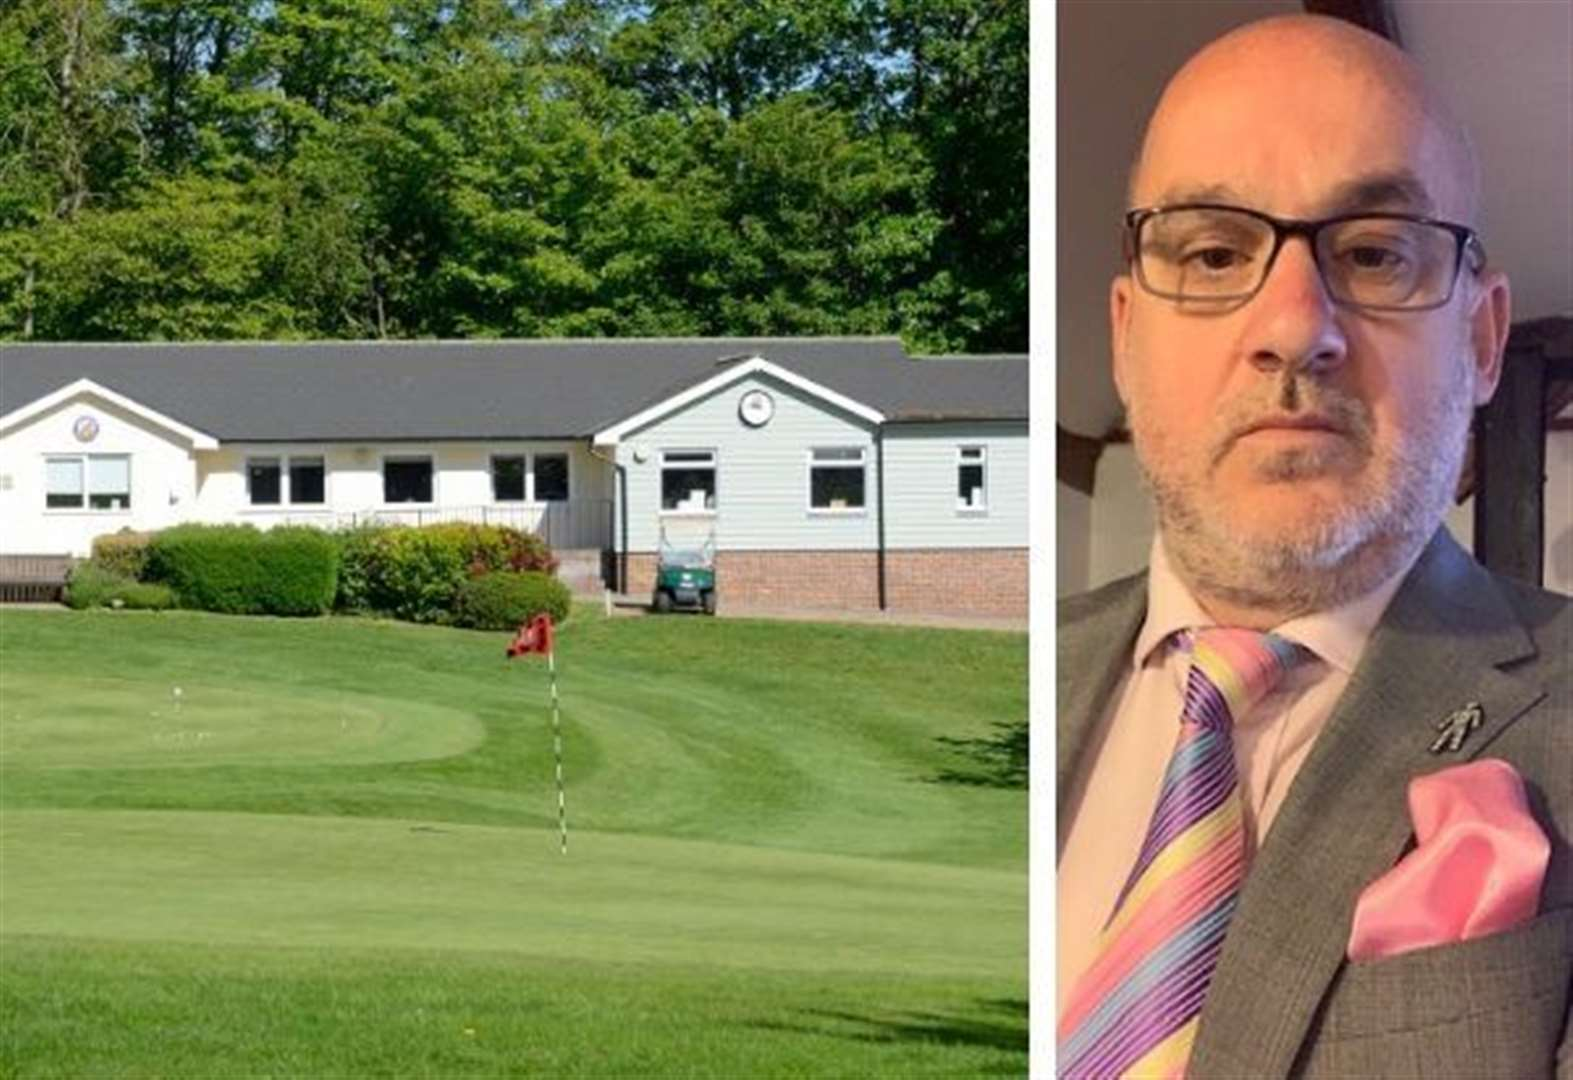 Golfer assaulted after row over 'near miss'